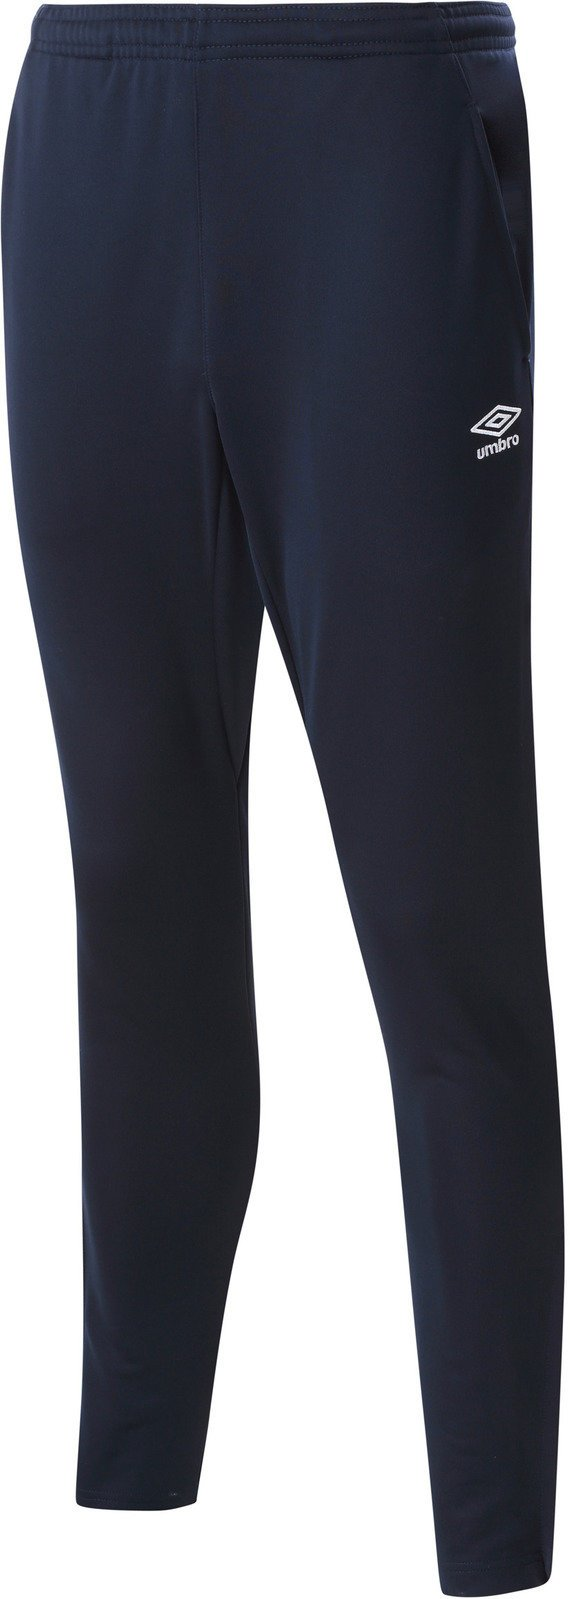 Umbro Tapered Training Pants - Campus Sports